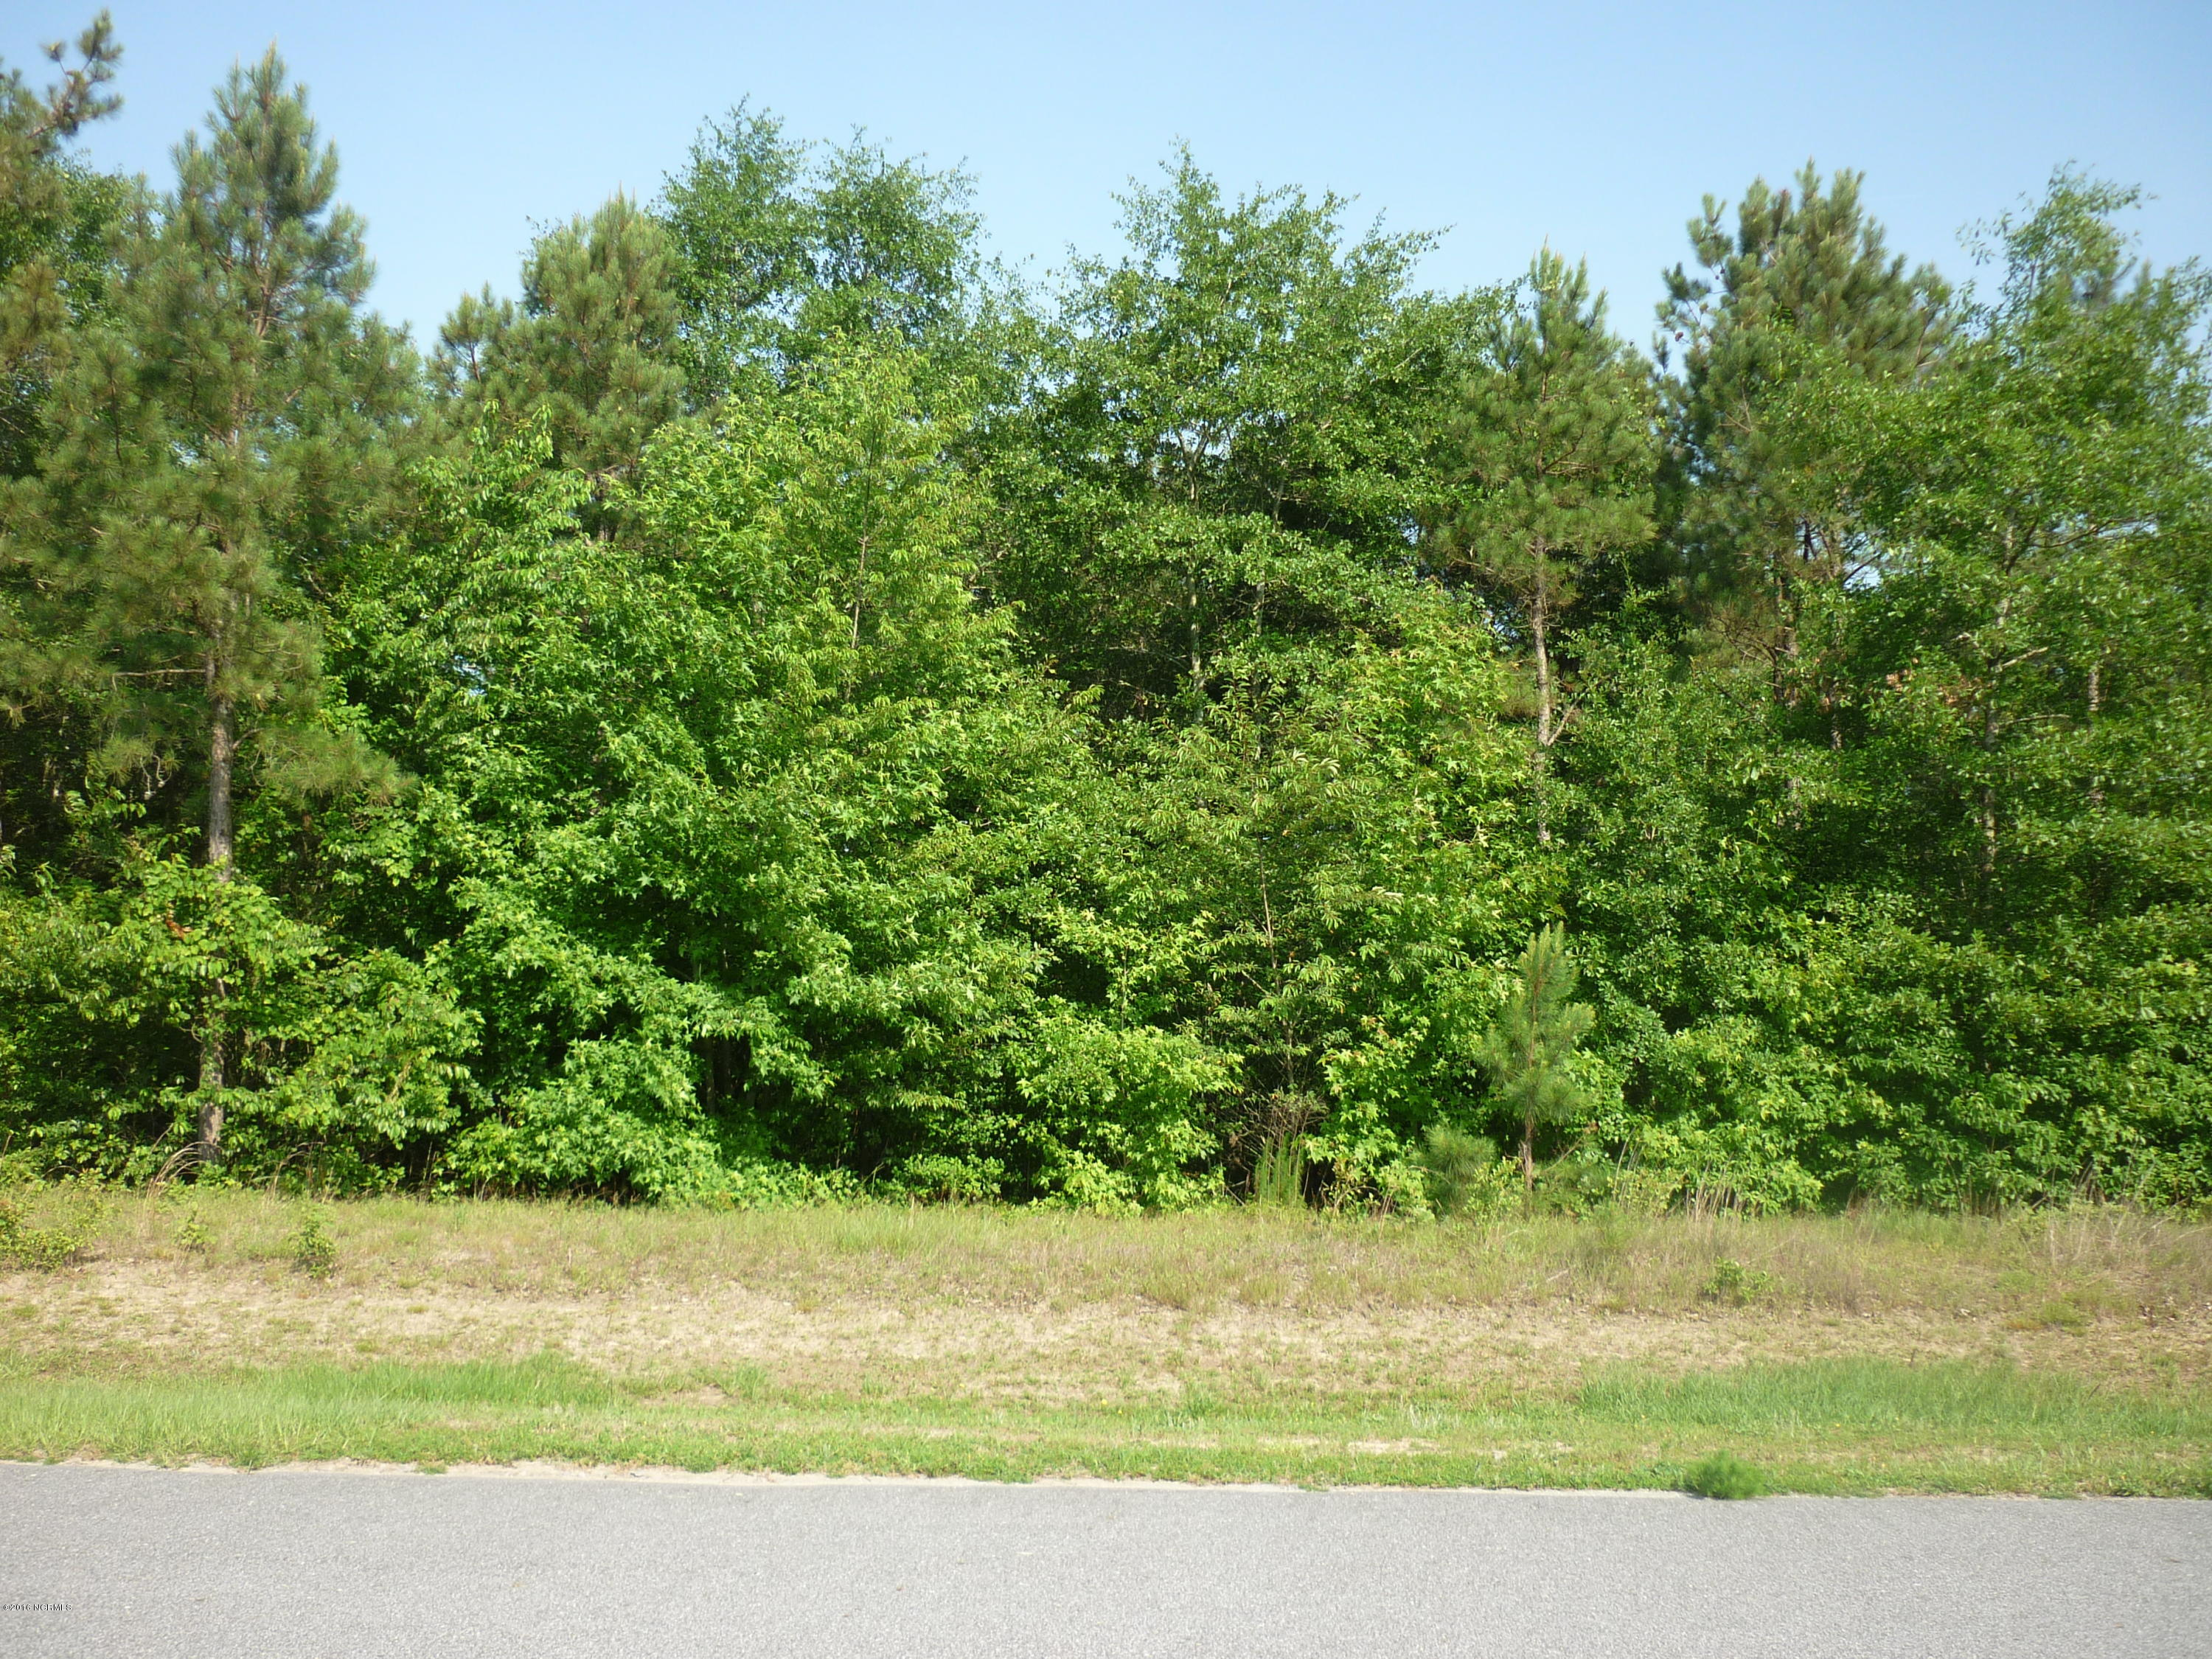 218 Deer Pointe Drive, Snow Hill, North Carolina 28580, ,Residential land,For sale,Deer Pointe,11200549